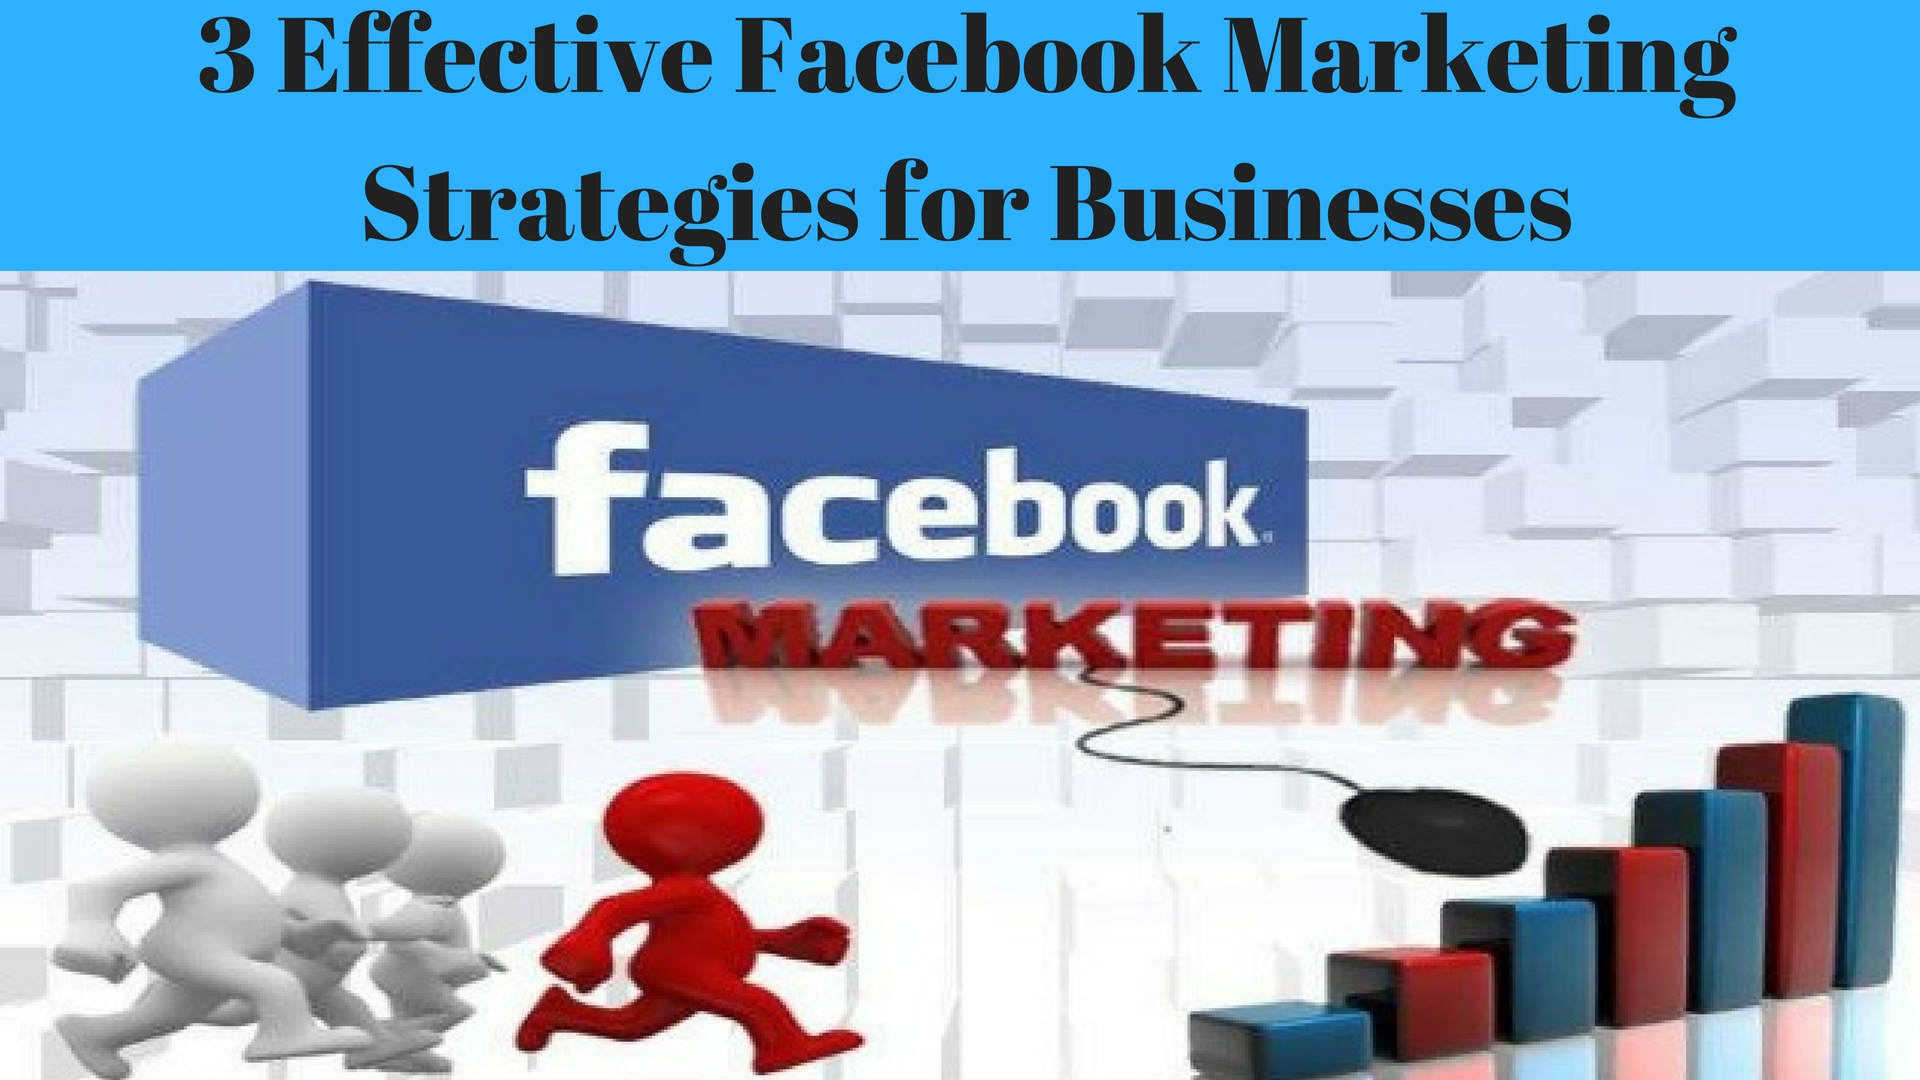 3 Effective Facebook Marketing Strategies for Businesses